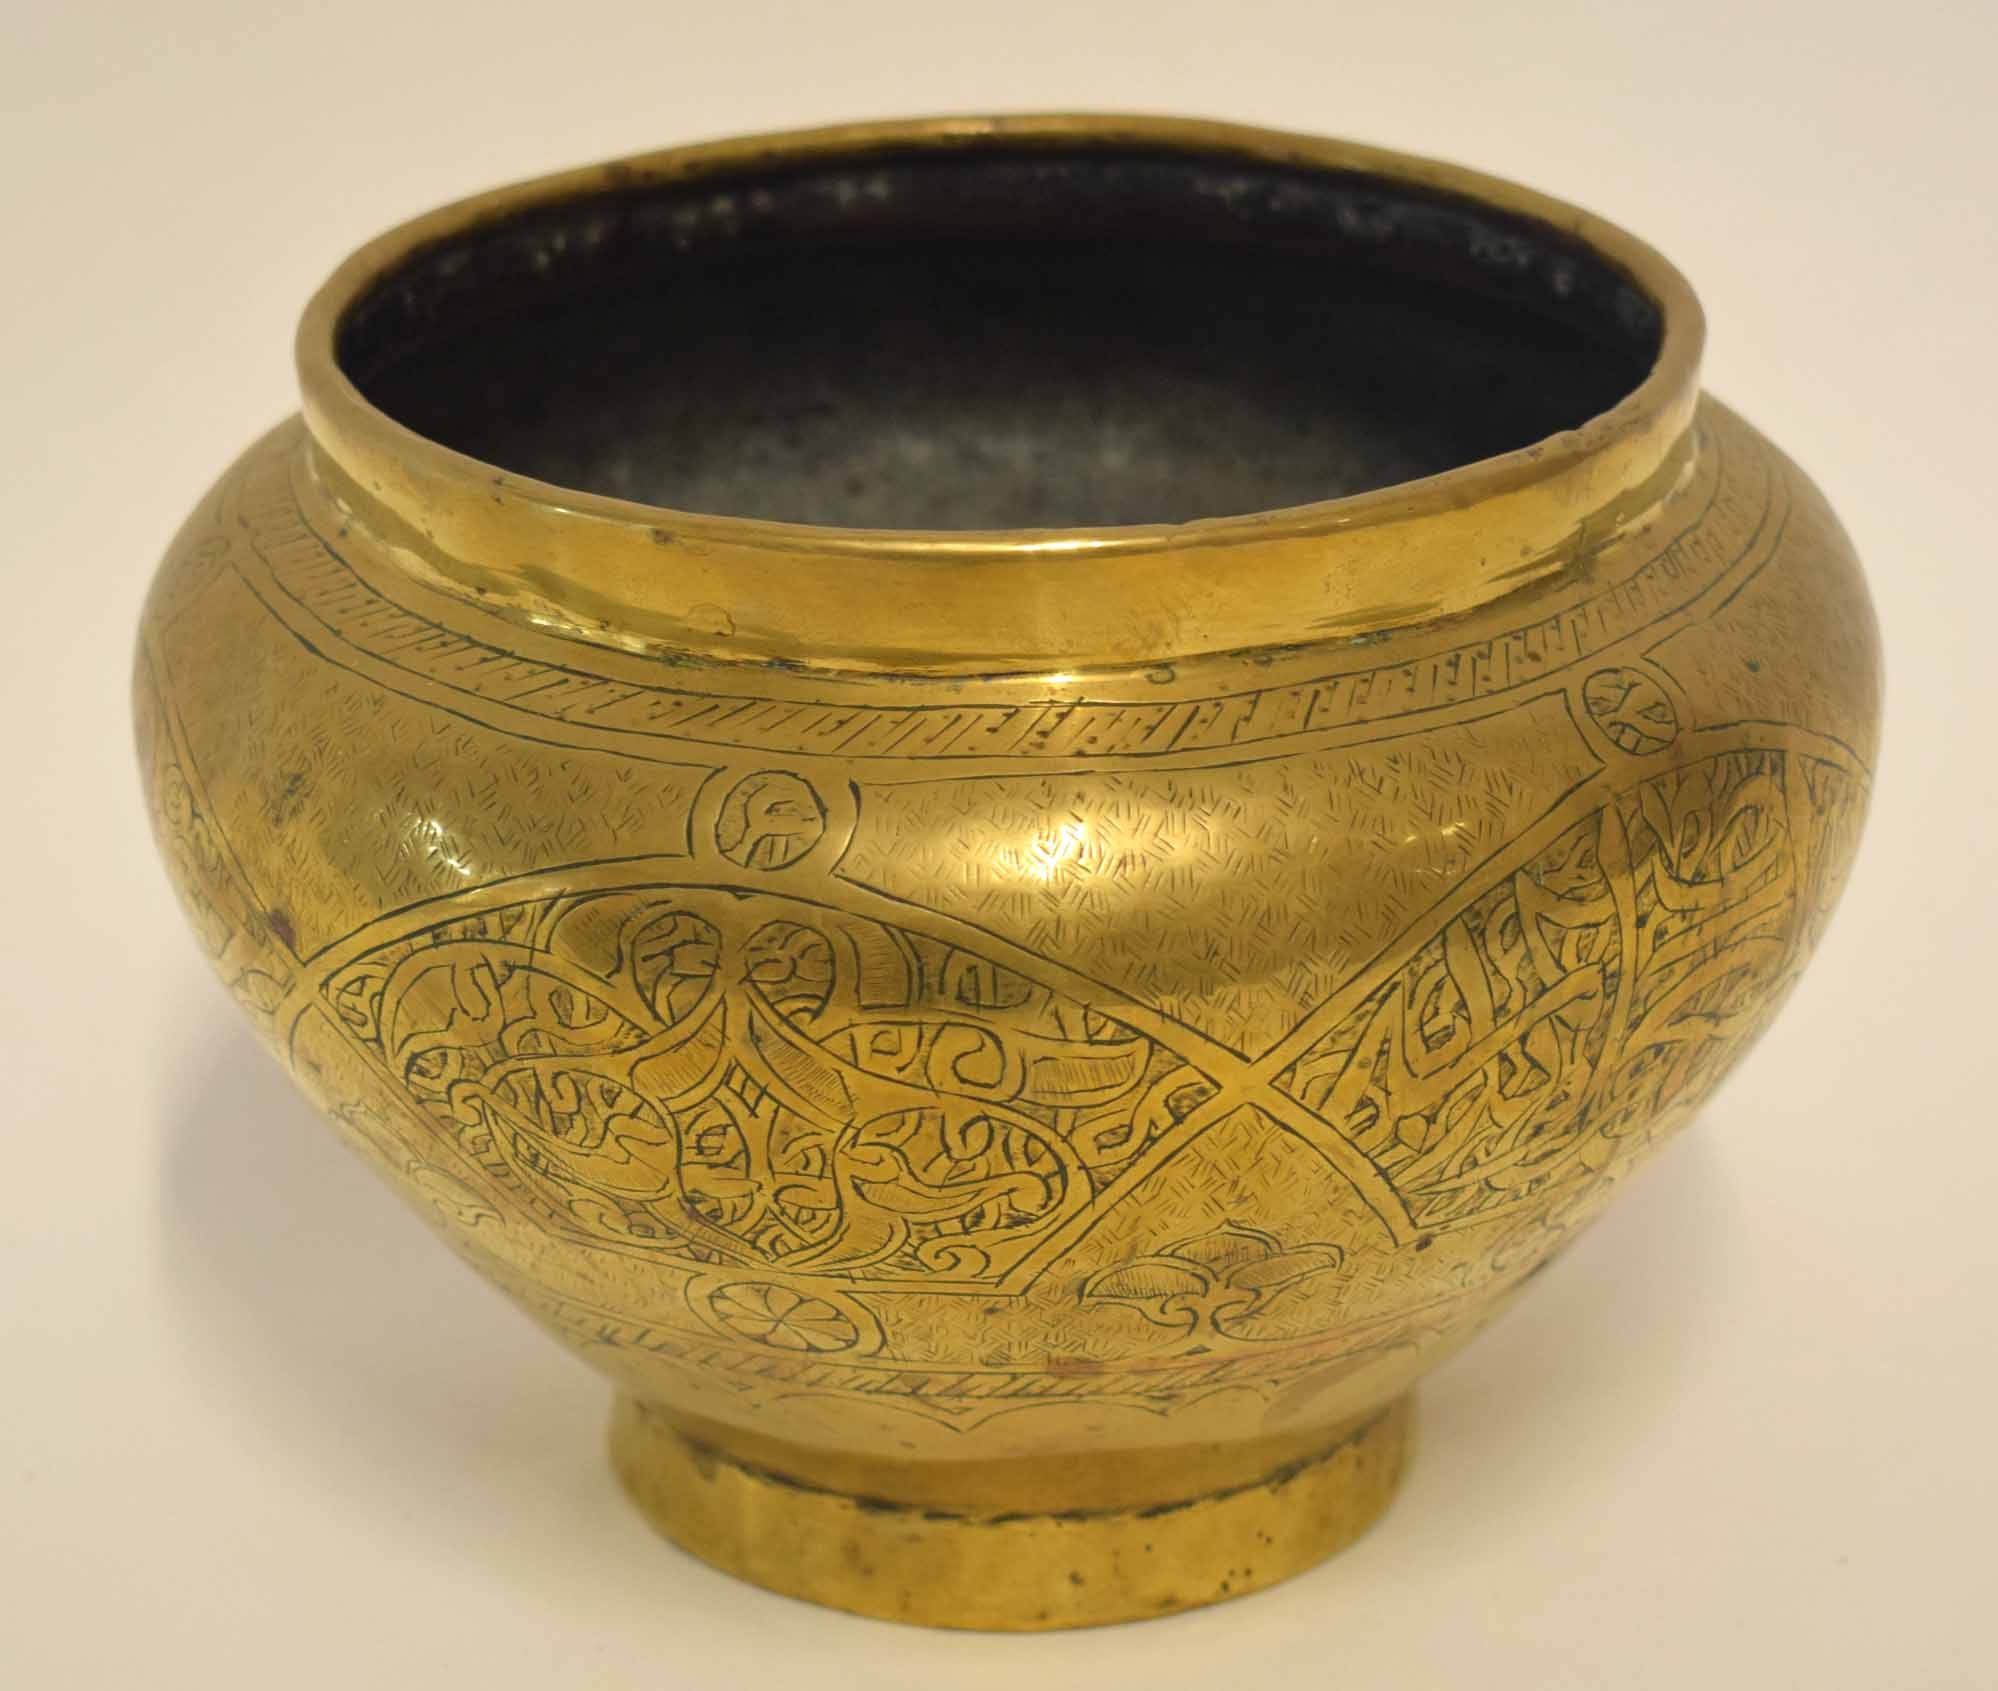 Lot 36 - Oriental metal ware jardiniere with an incised design, 18cm diam